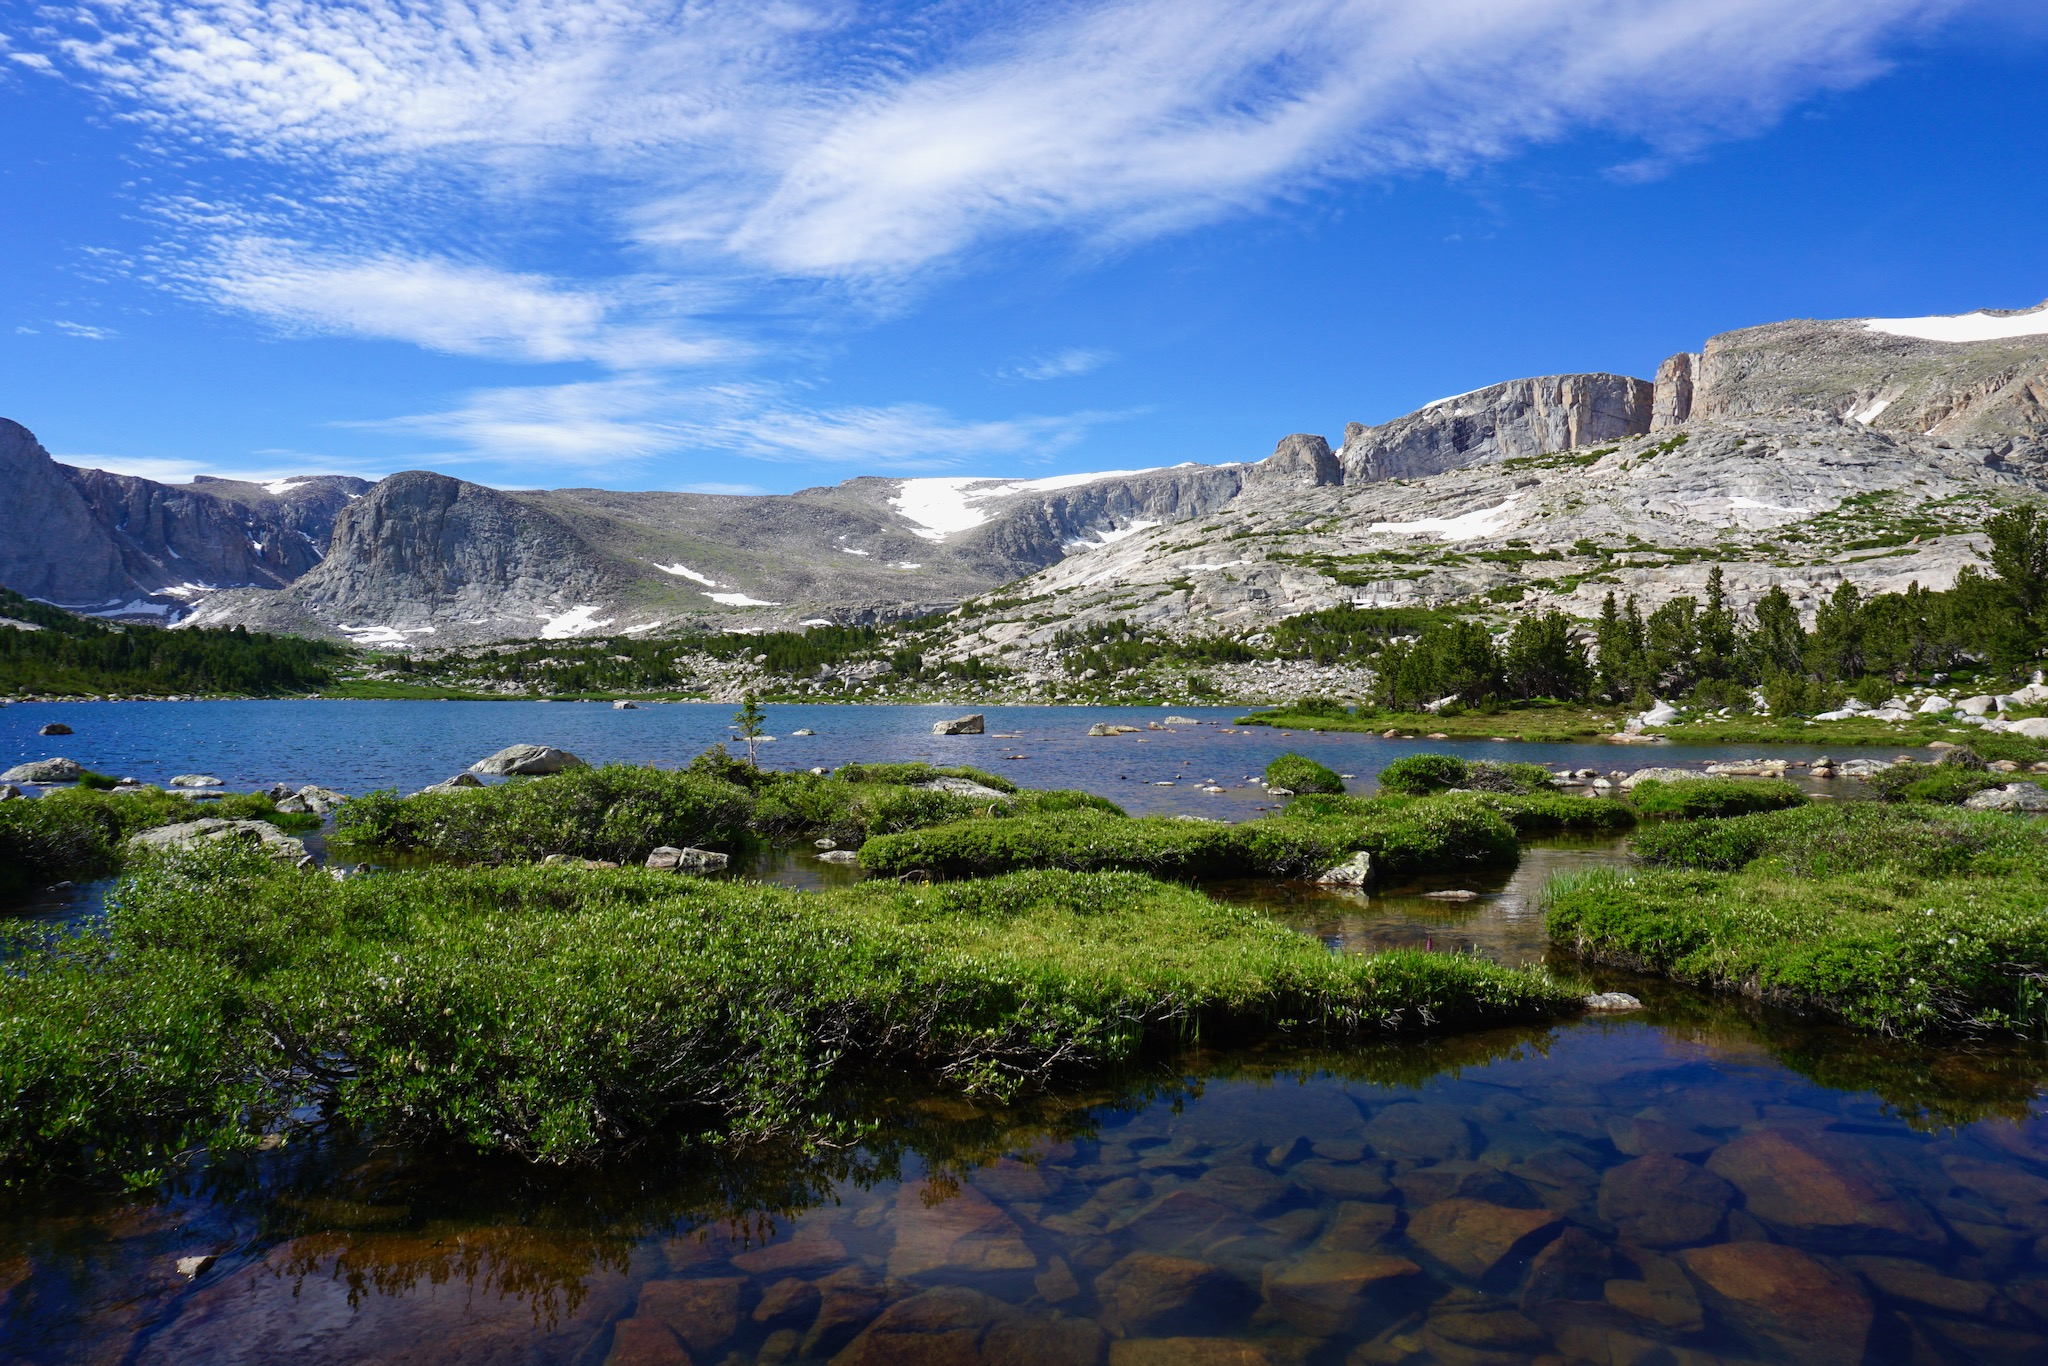 Stough Lakes Basin